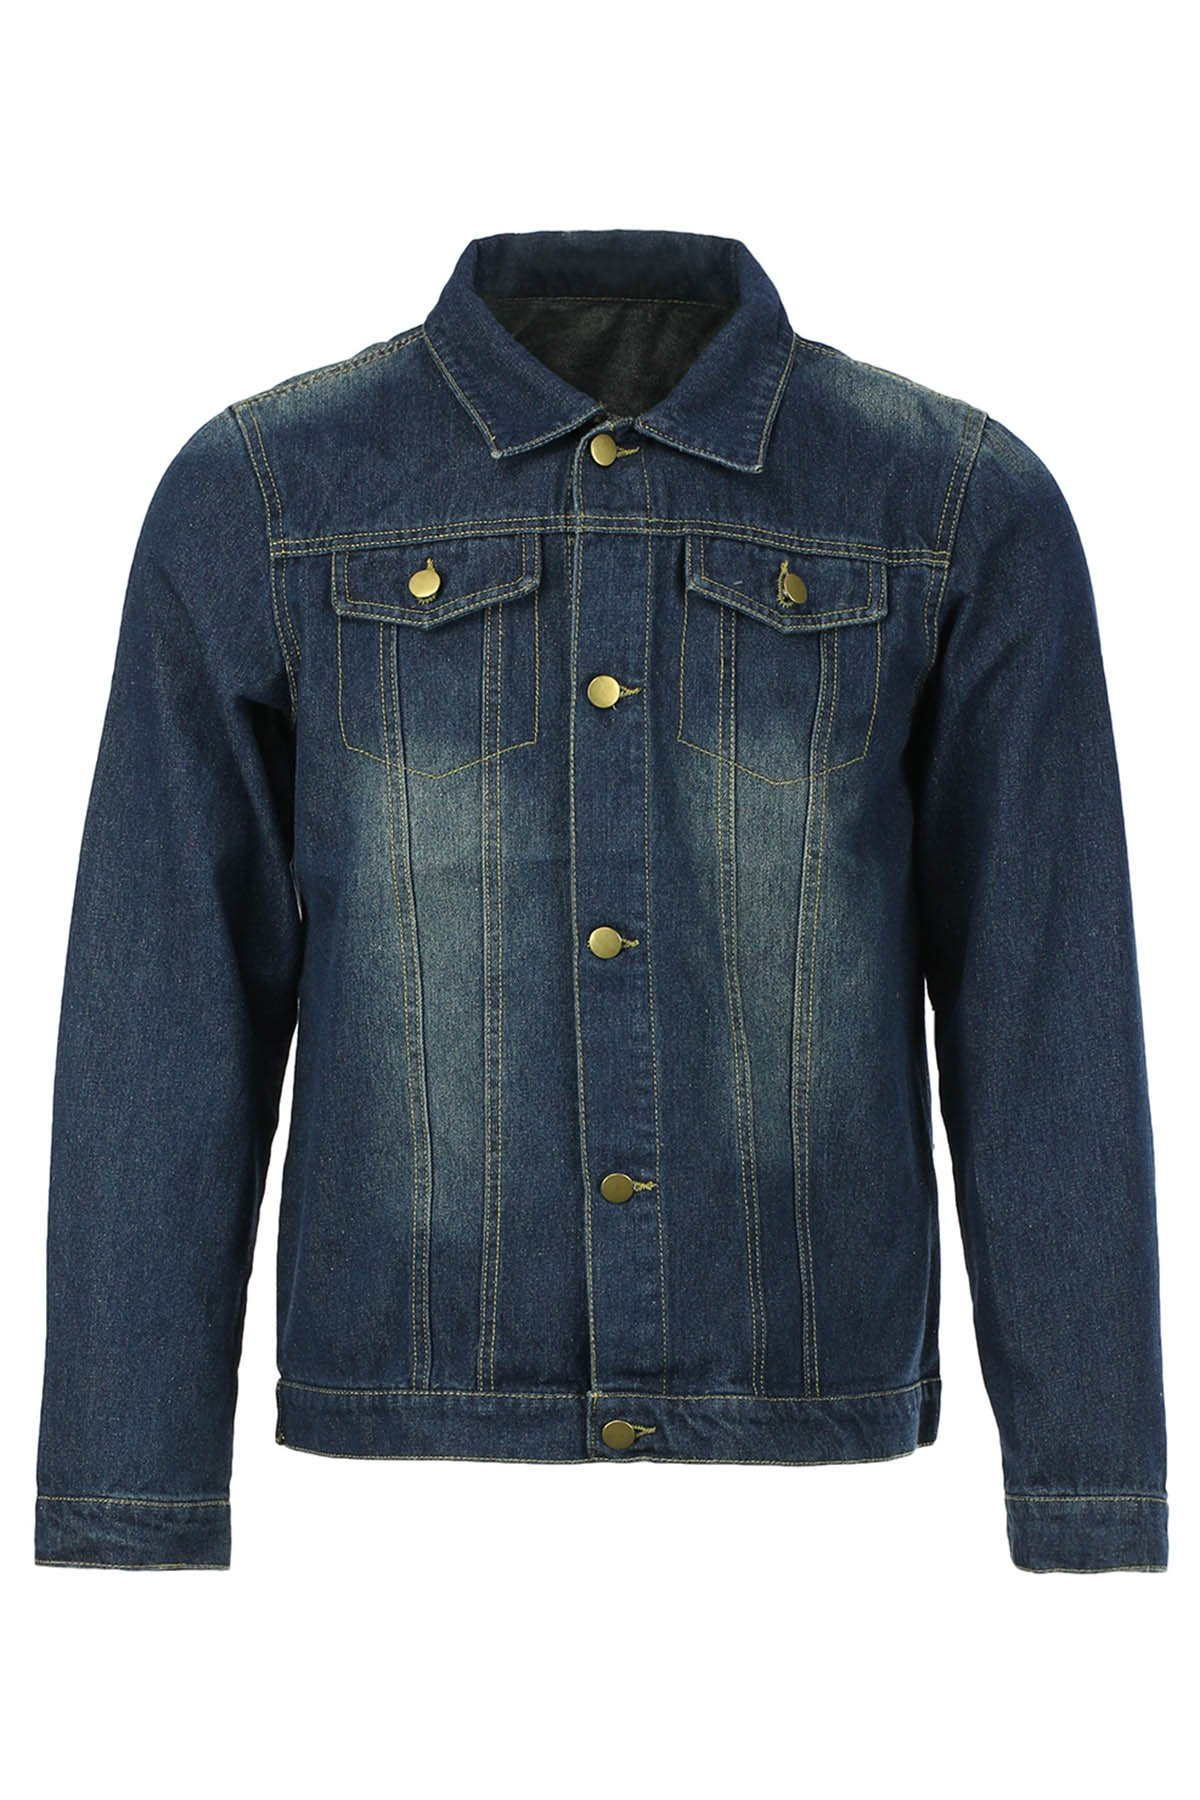 Slimming Shirt Collar Stylish Double Pockets Buttons Design Long Sleeve Men's Denim Jacket - DEEP BLUE M